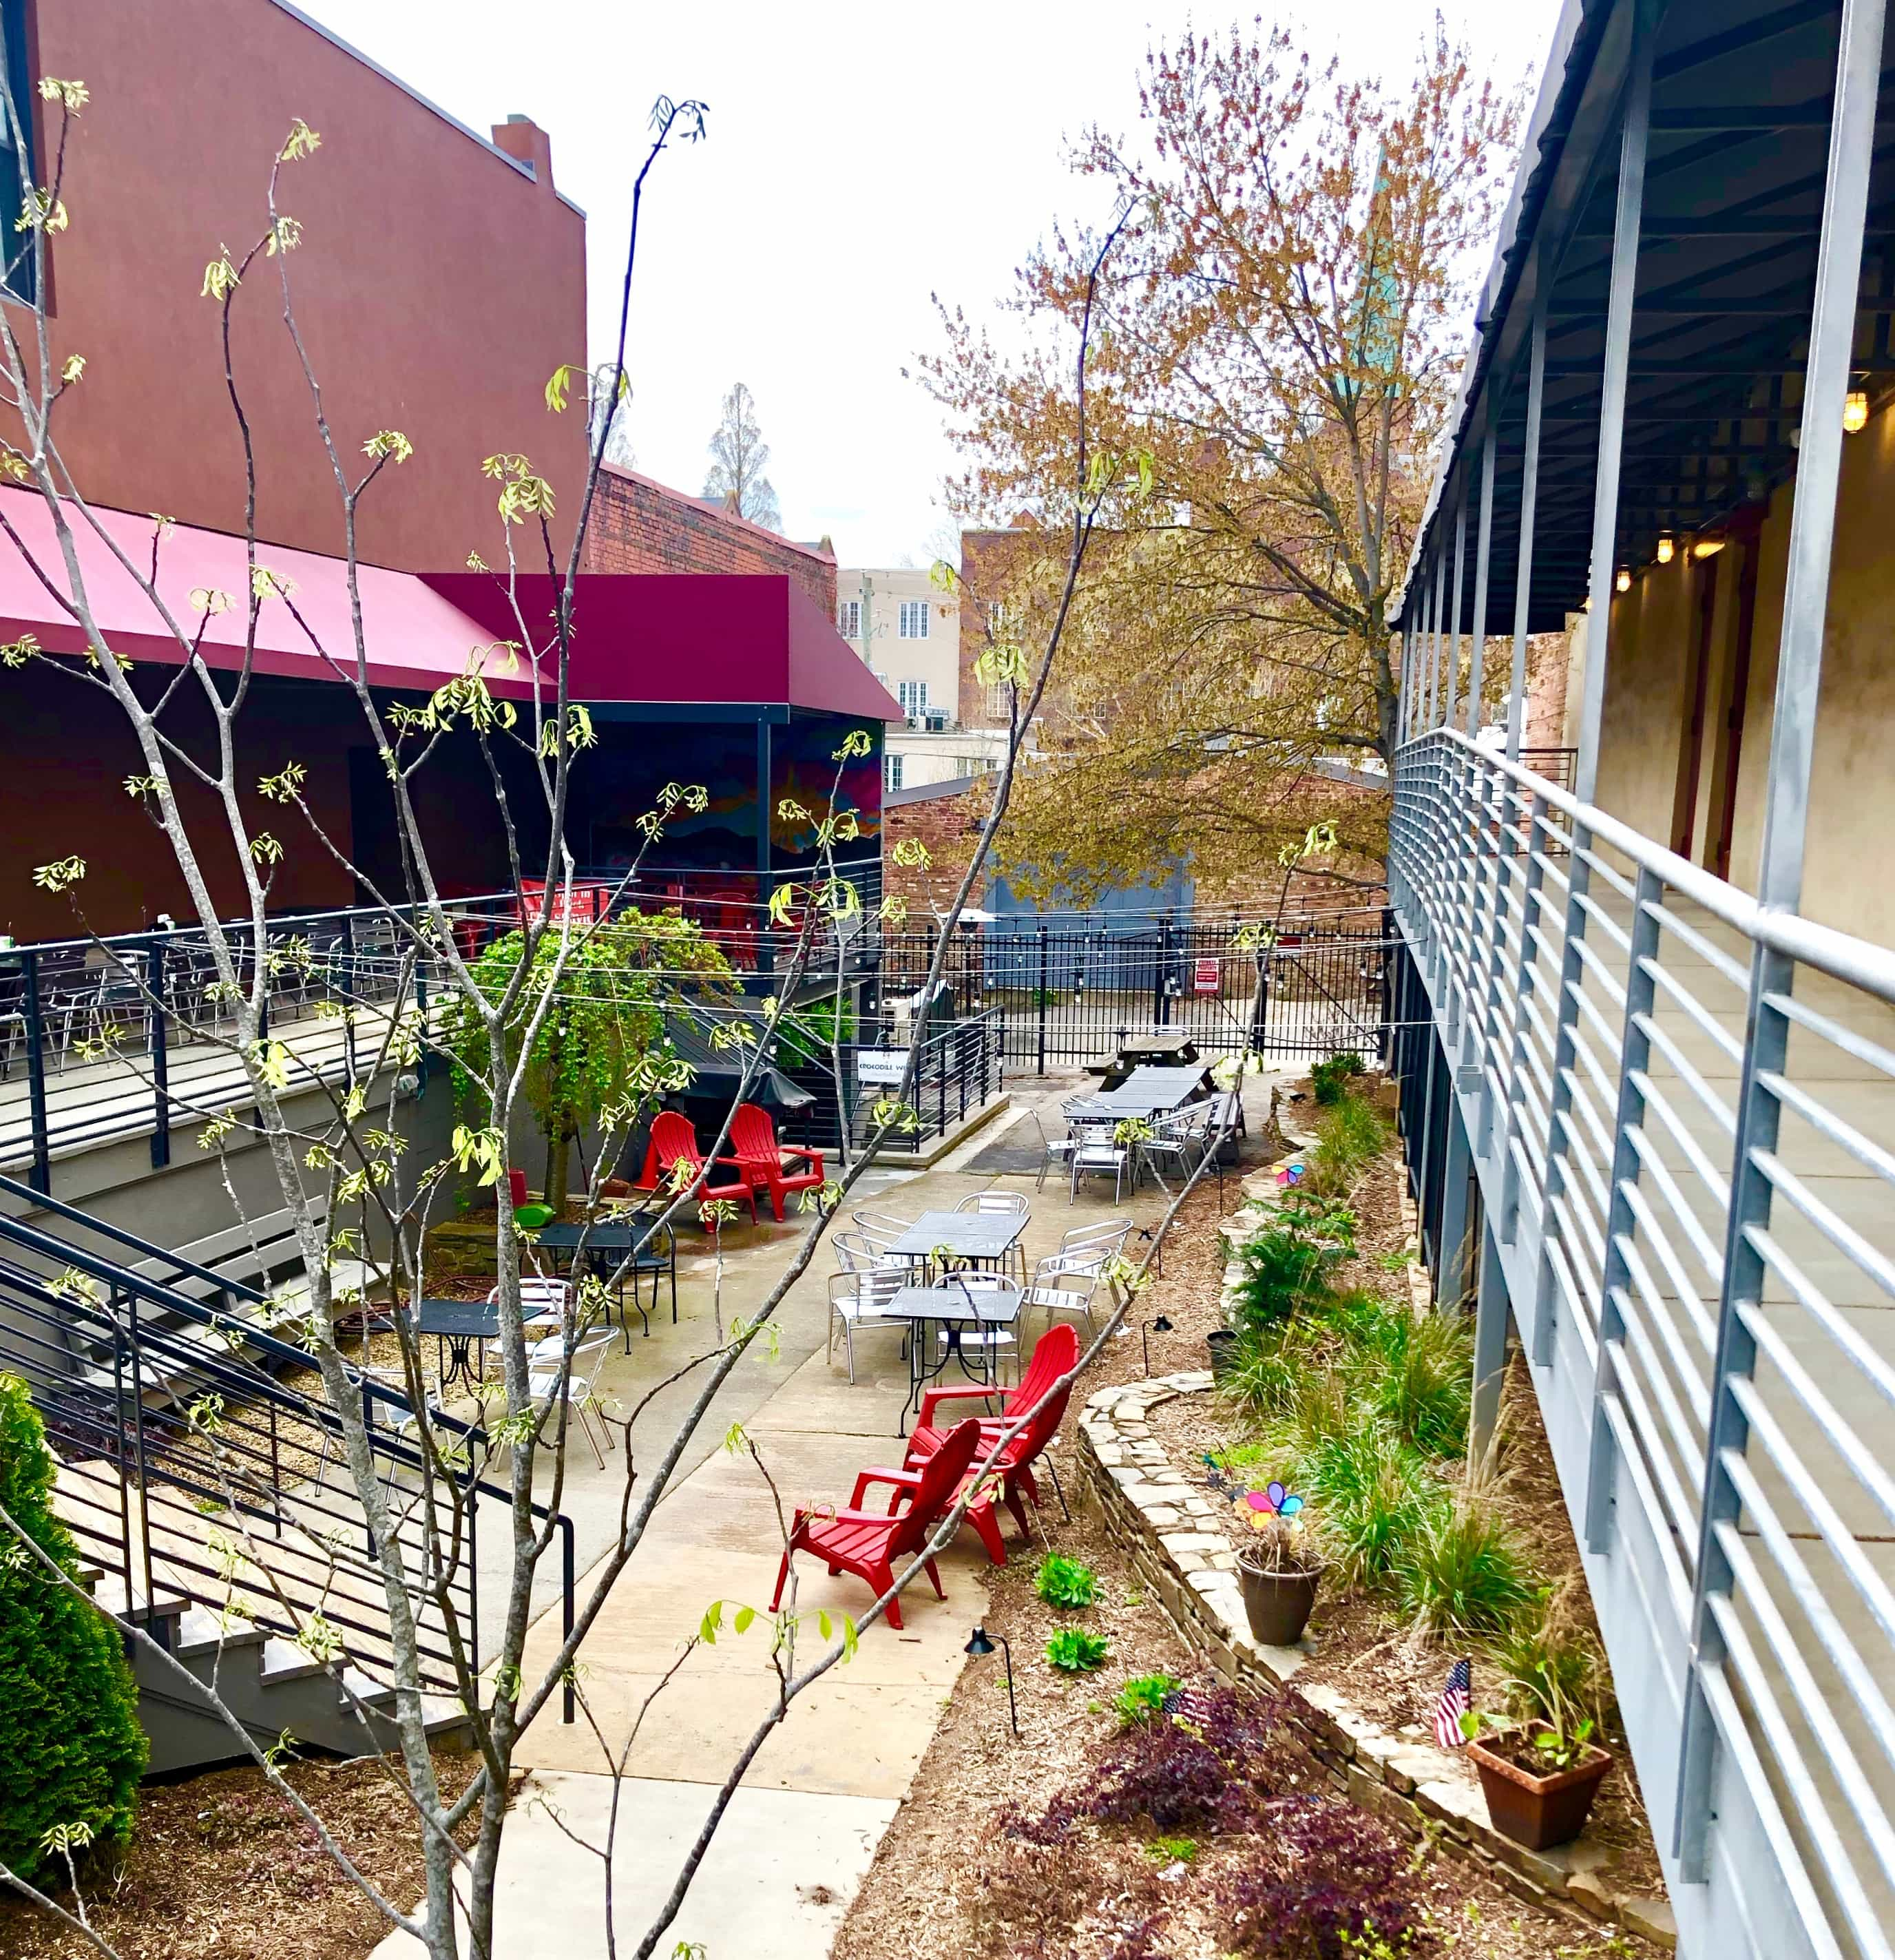 the garden seating area outside of Manicomio Pizza parlor in Asheville, NC